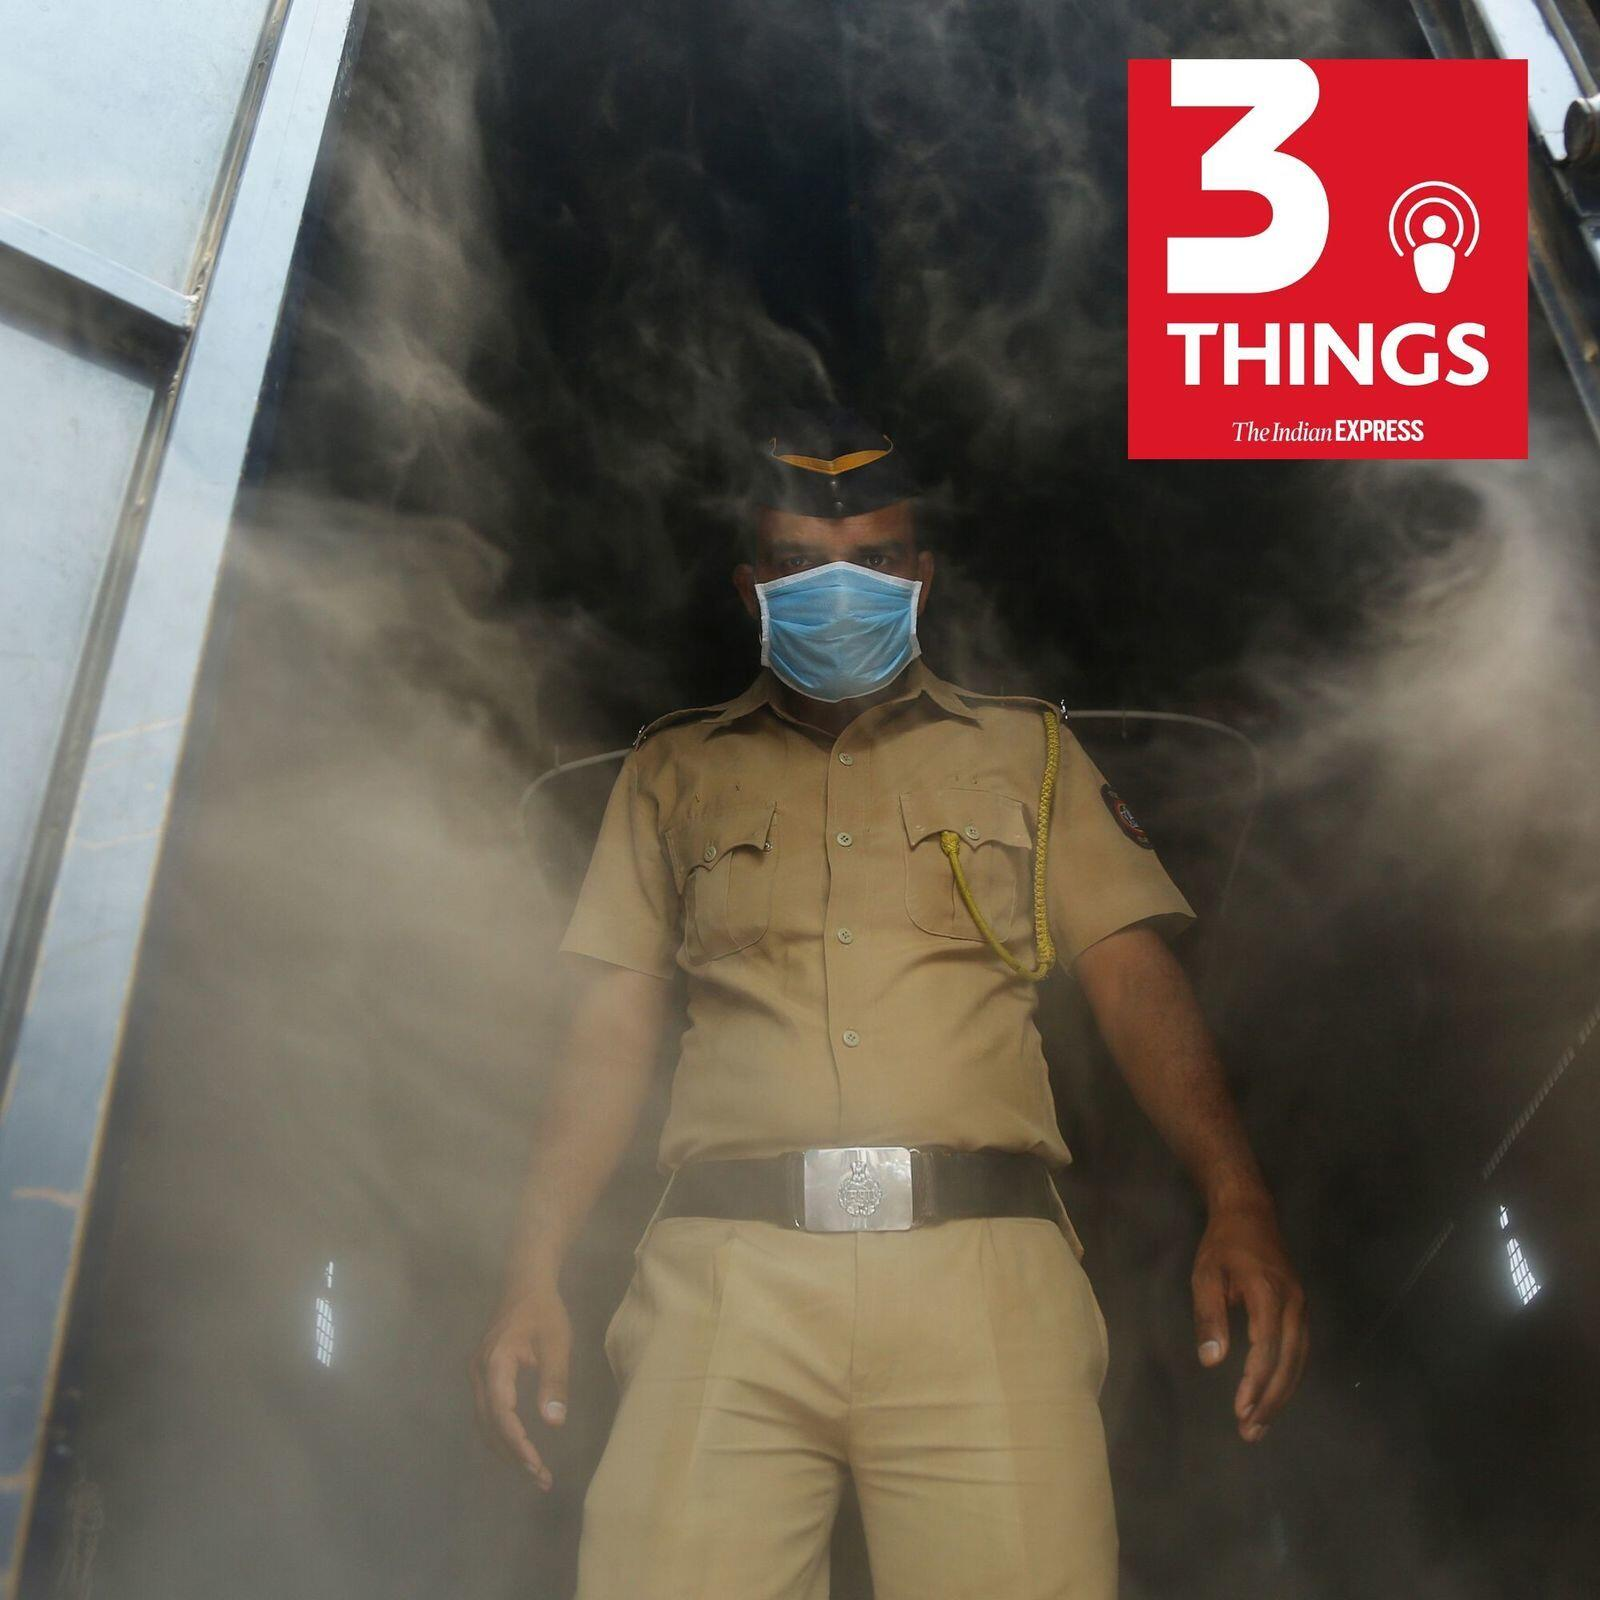 890: The challenges for India's police forces on the frontline against COVID-19